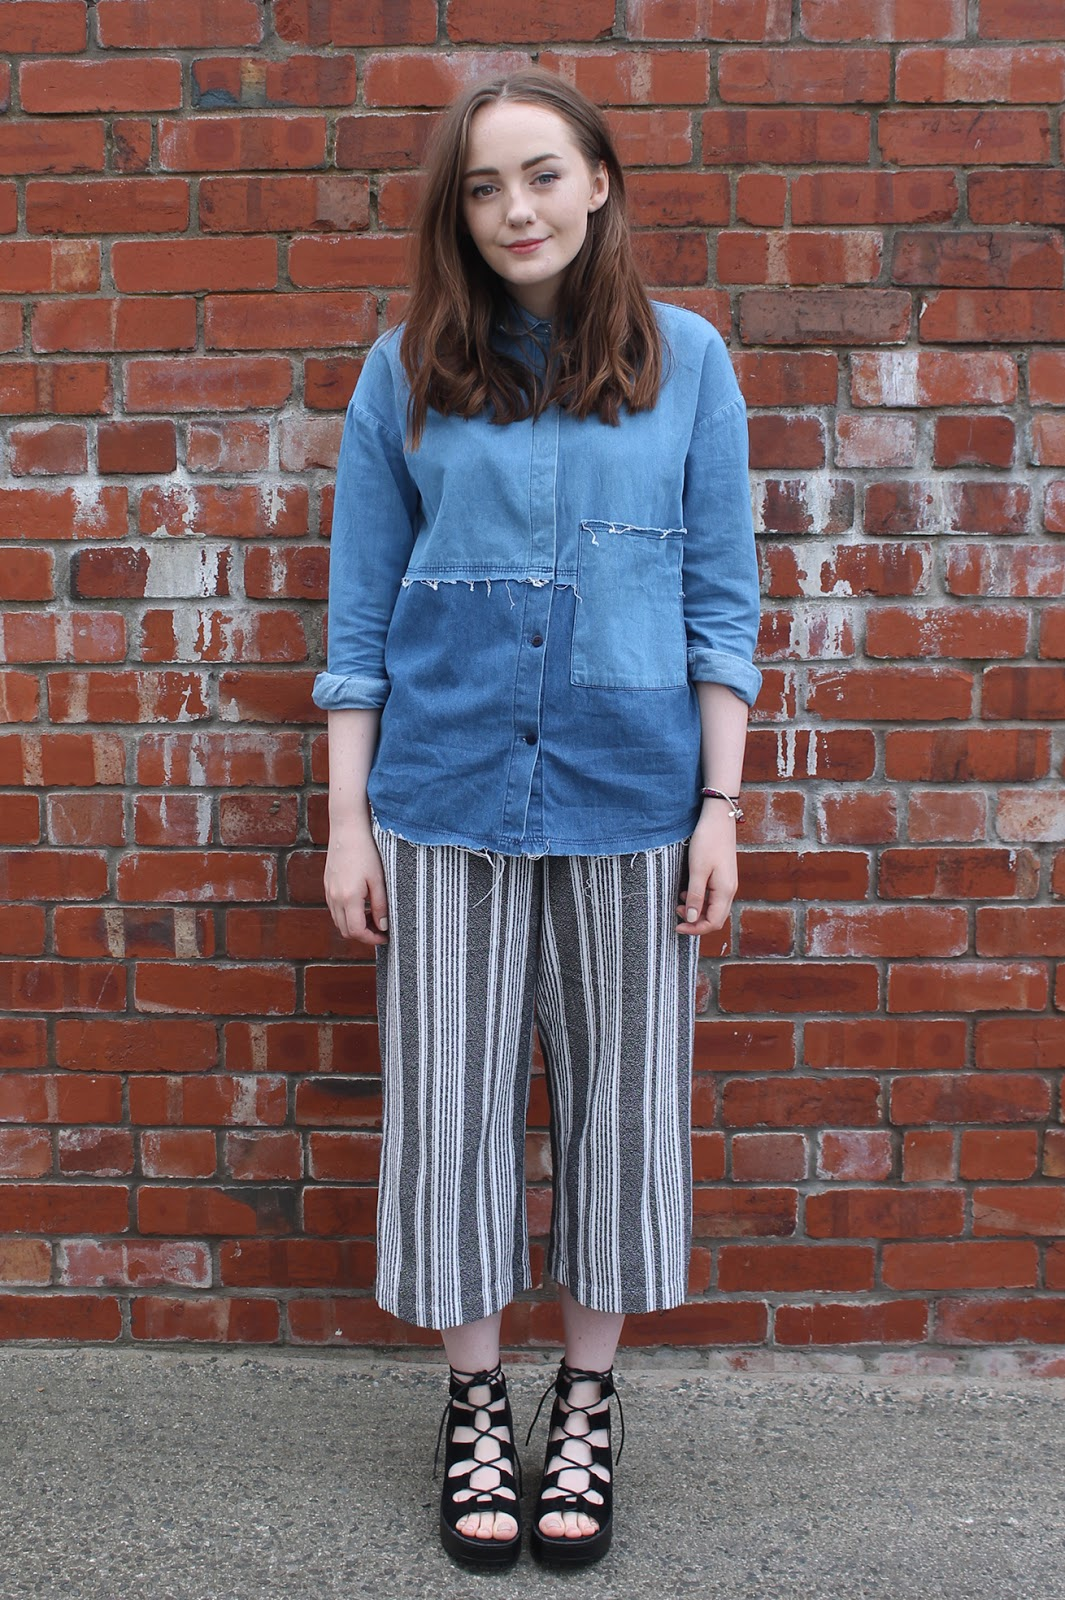 Raw edge Zara denim shirt, Topshop striped culottes, black lace up sandals, blogger outfit